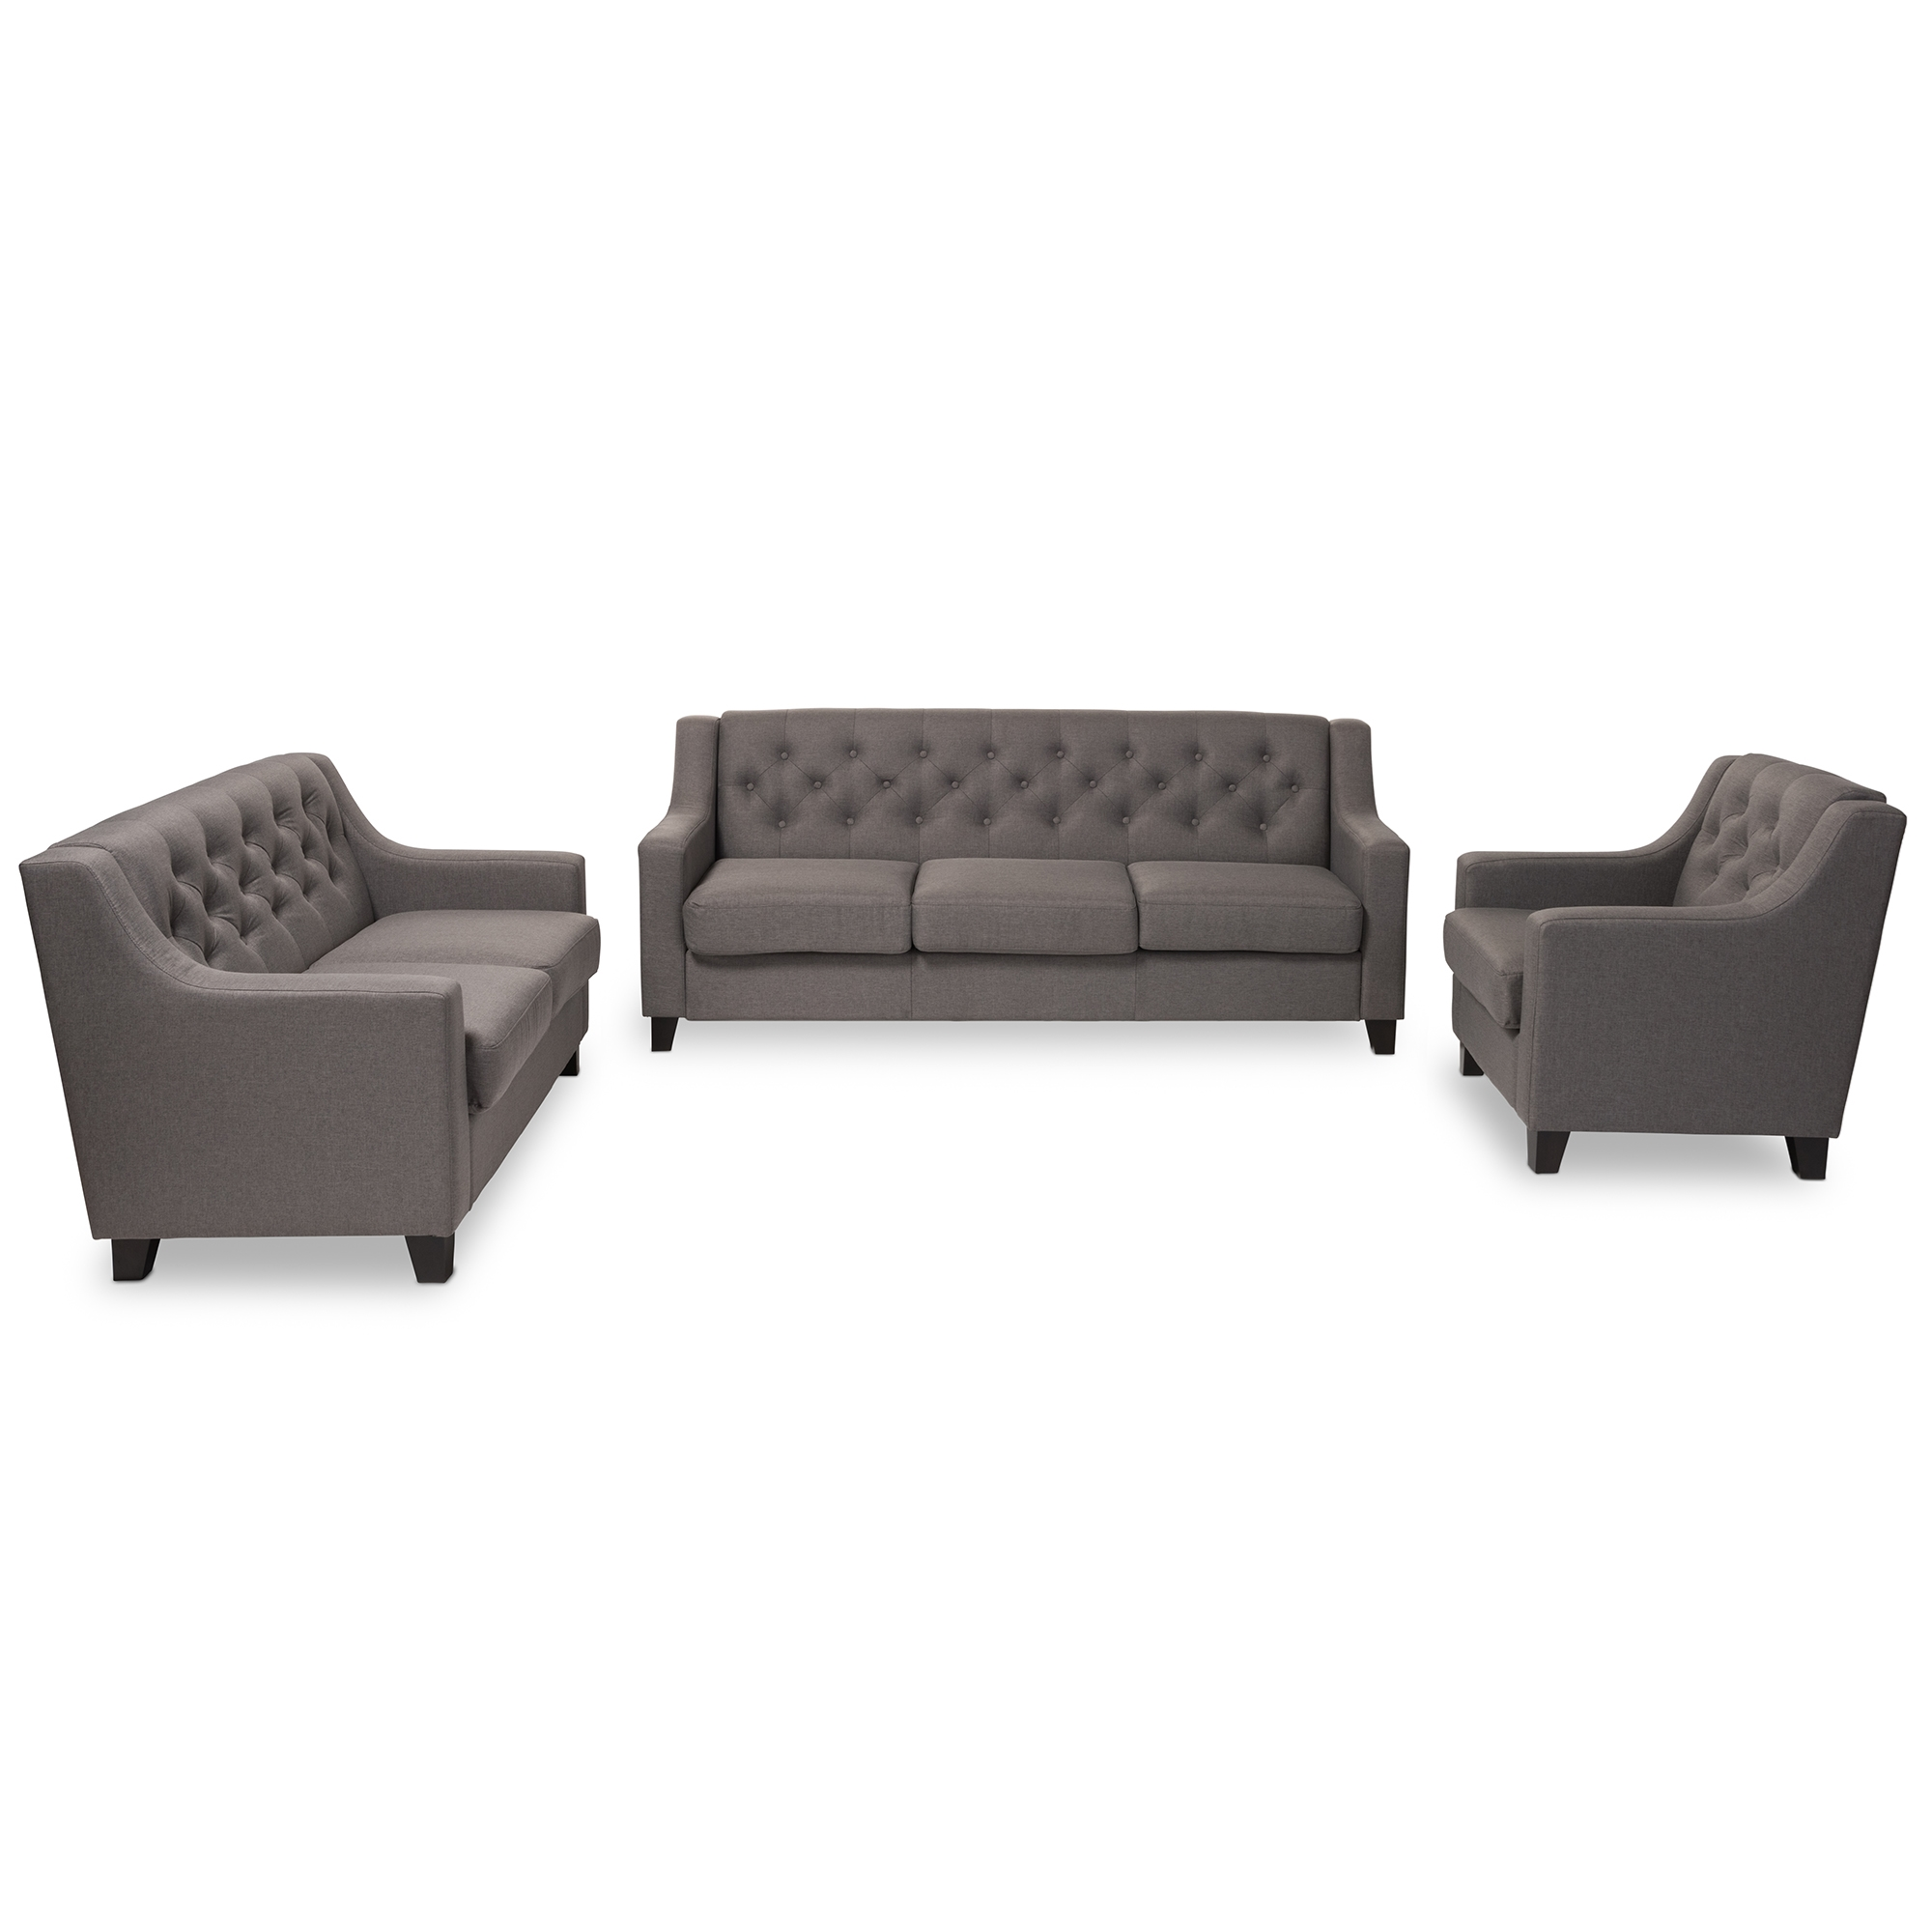 Baxton Studio Arcadia Modern And Contemporary Grey Fabric Upholstered  Button Tufted 3 Piece Living Room Sofa Set